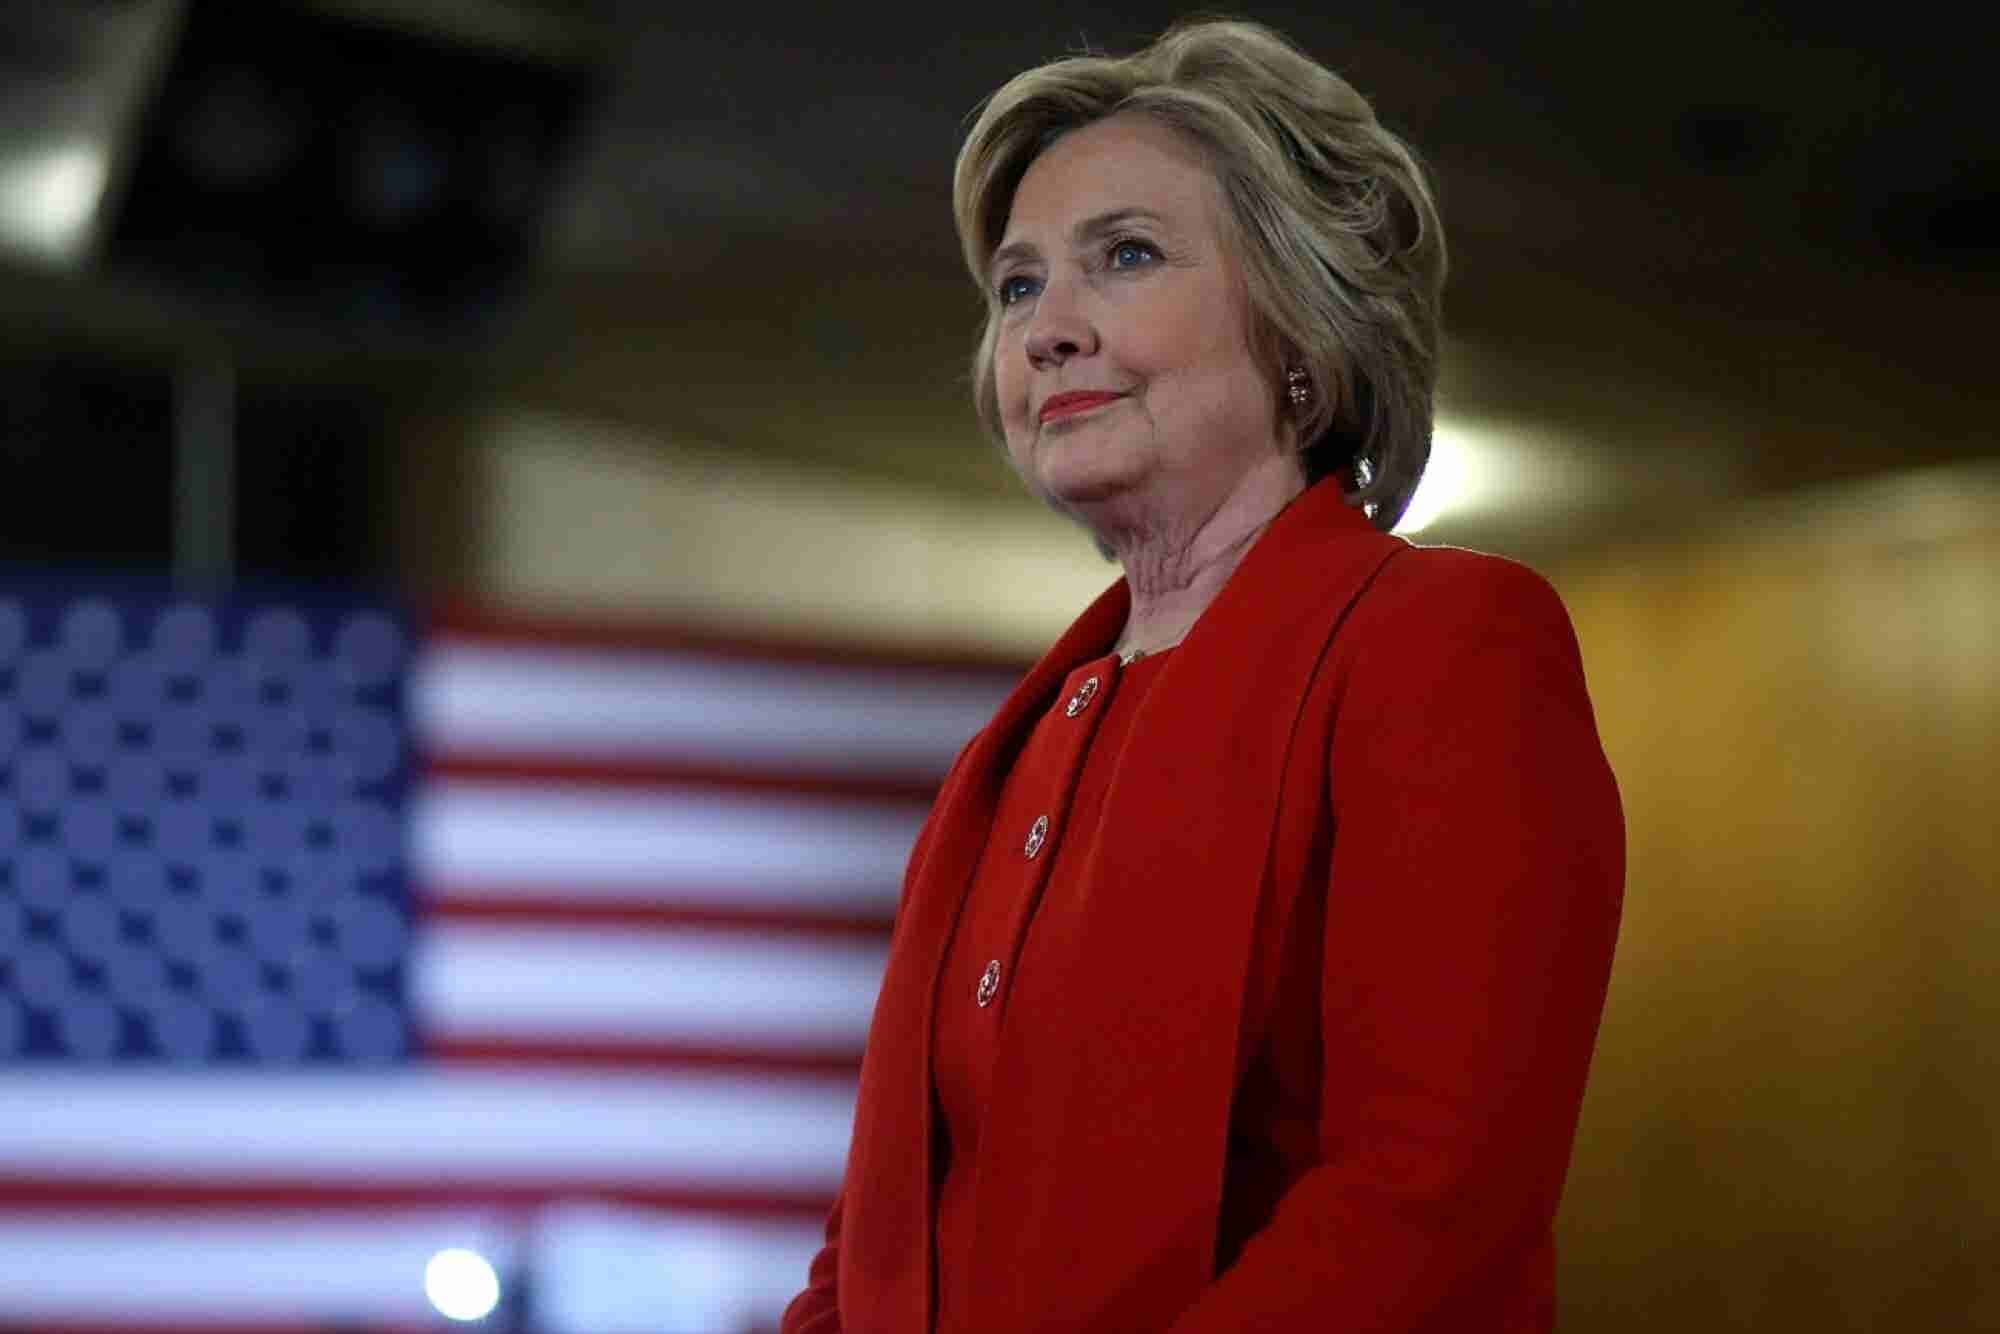 Hillary Clinton Conquered These 3 Psychological Traits to Take the Lead